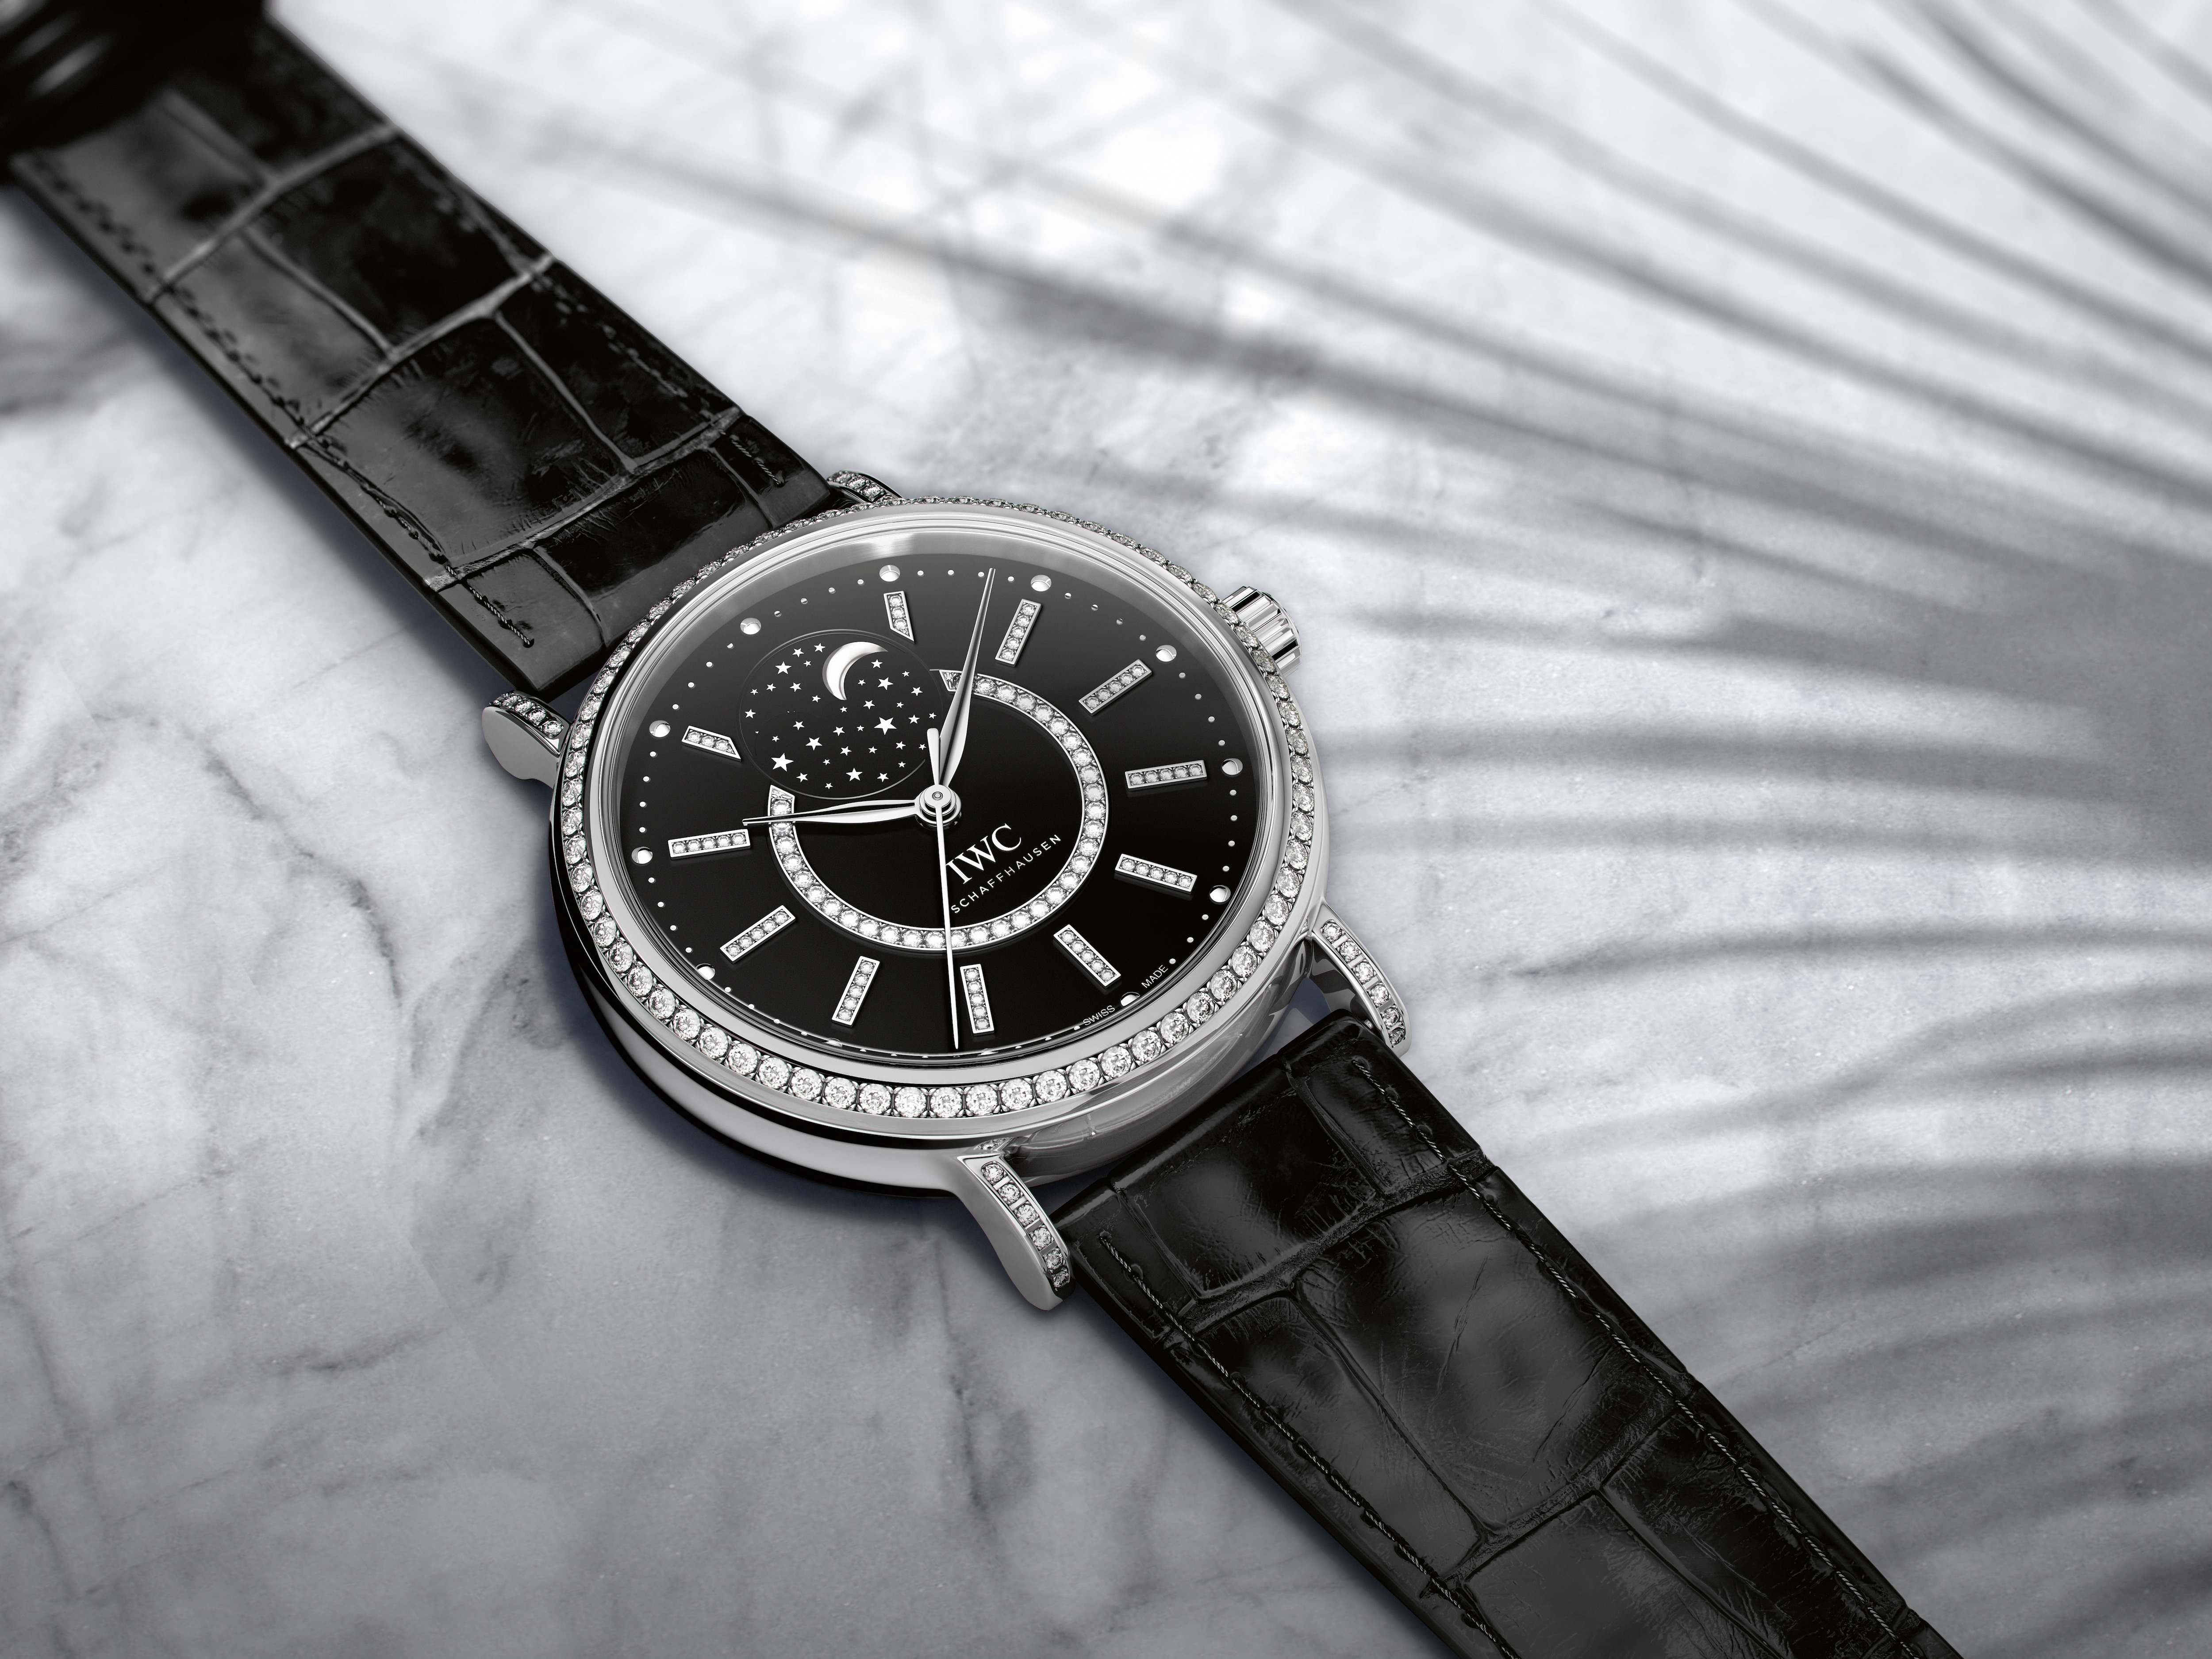 Rado First Copy Watches Price In India